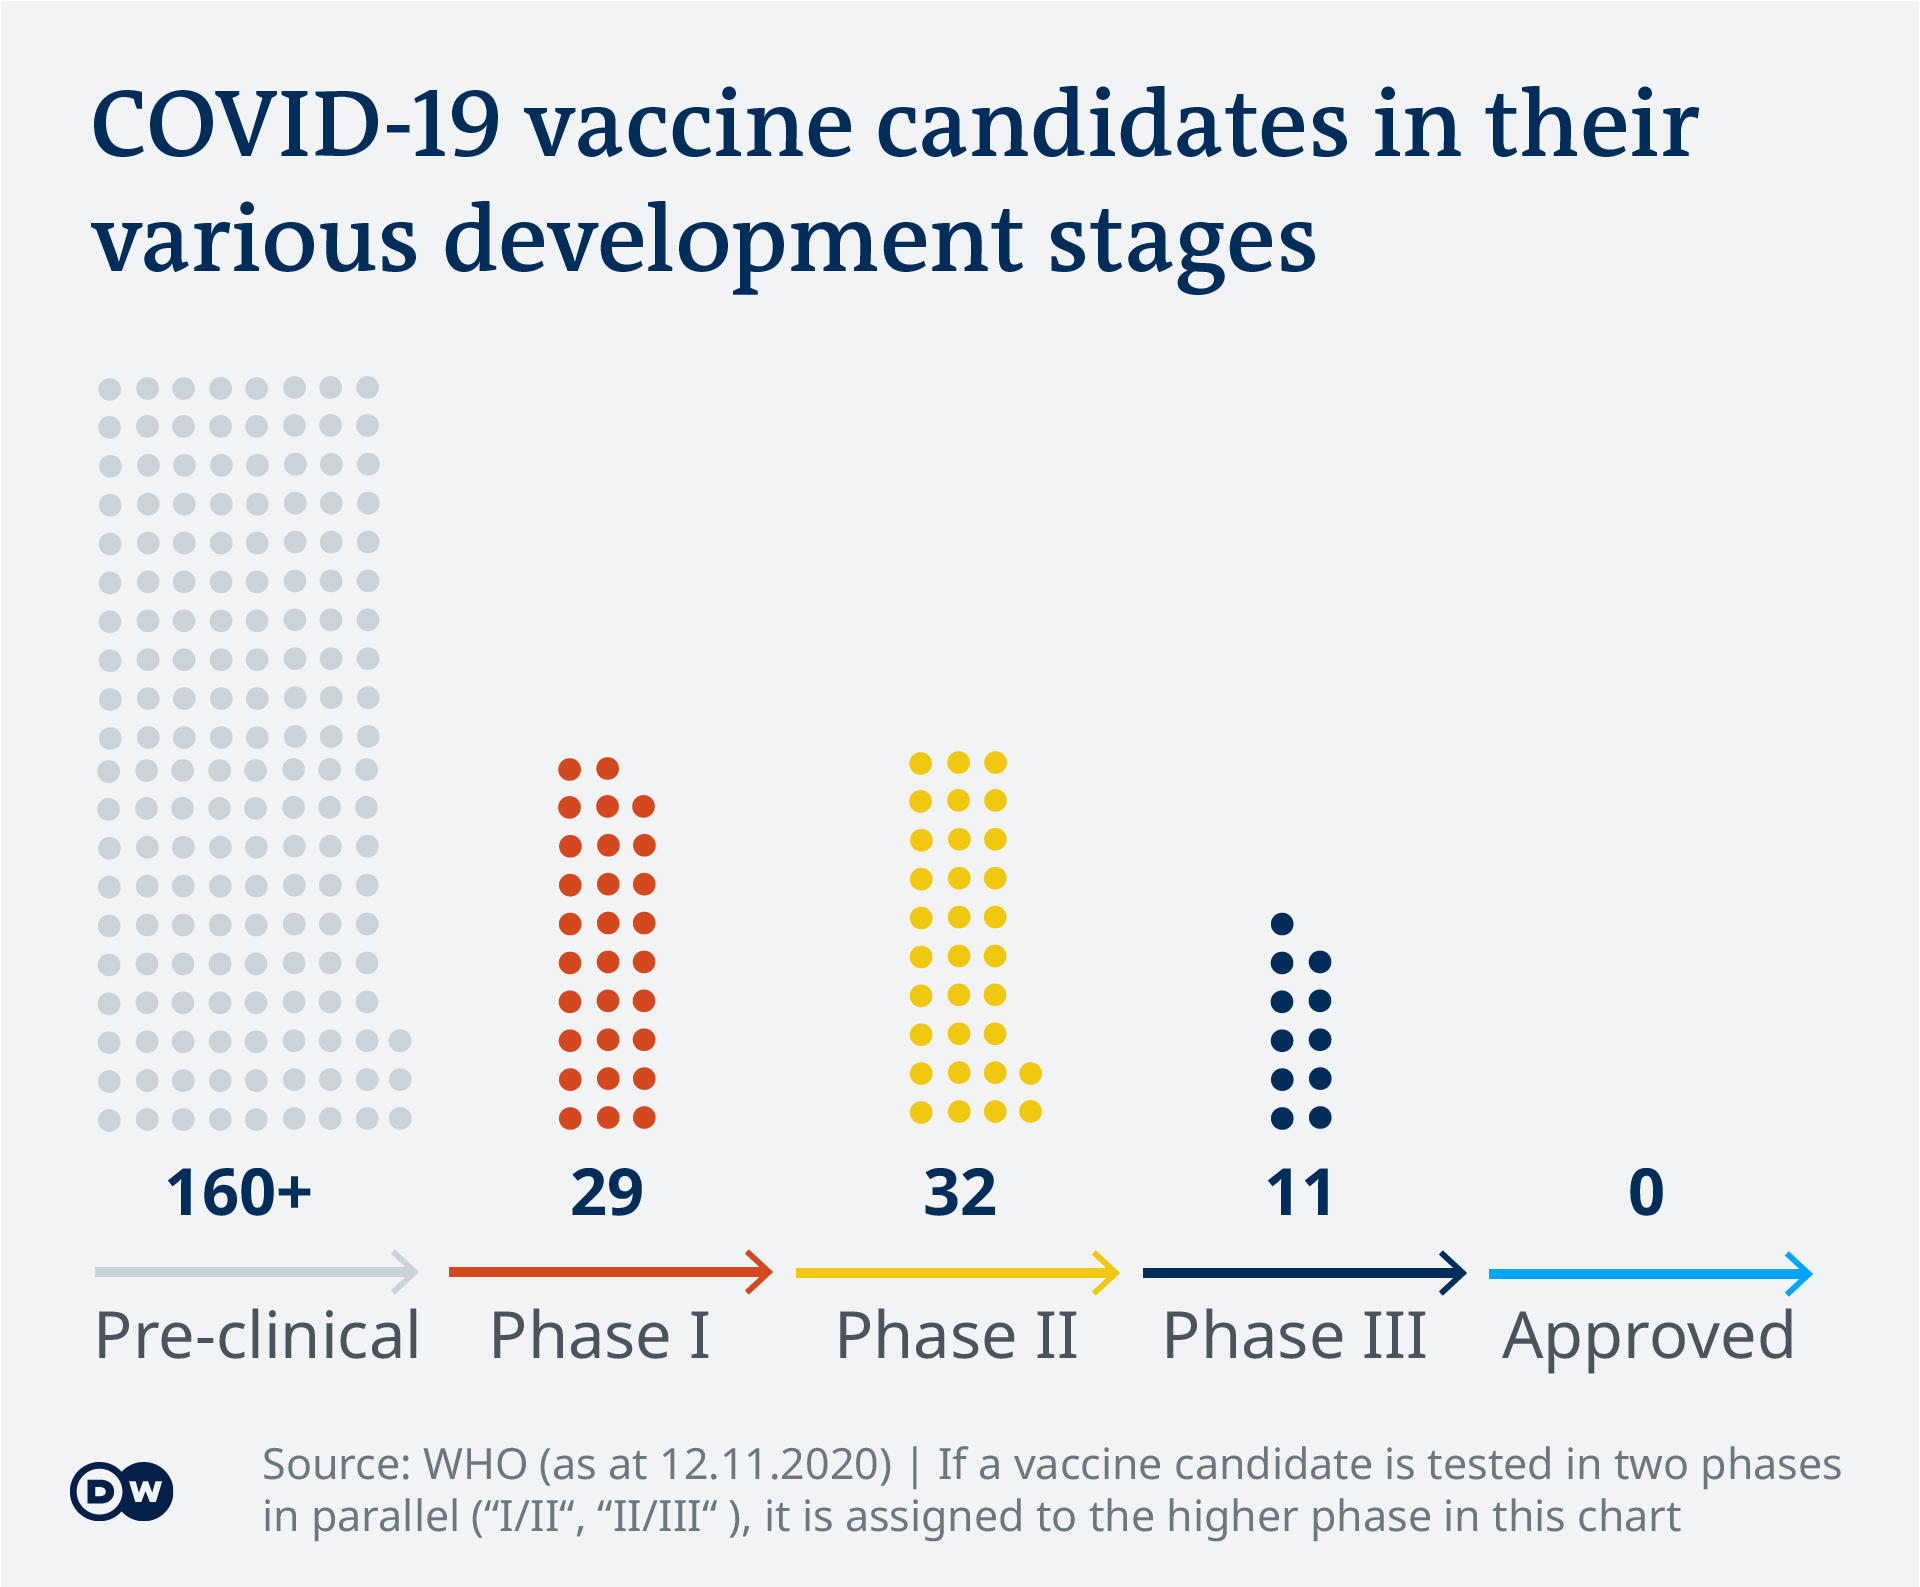 Data visualization - COVID-19 vaccine tracker - candidates by phases